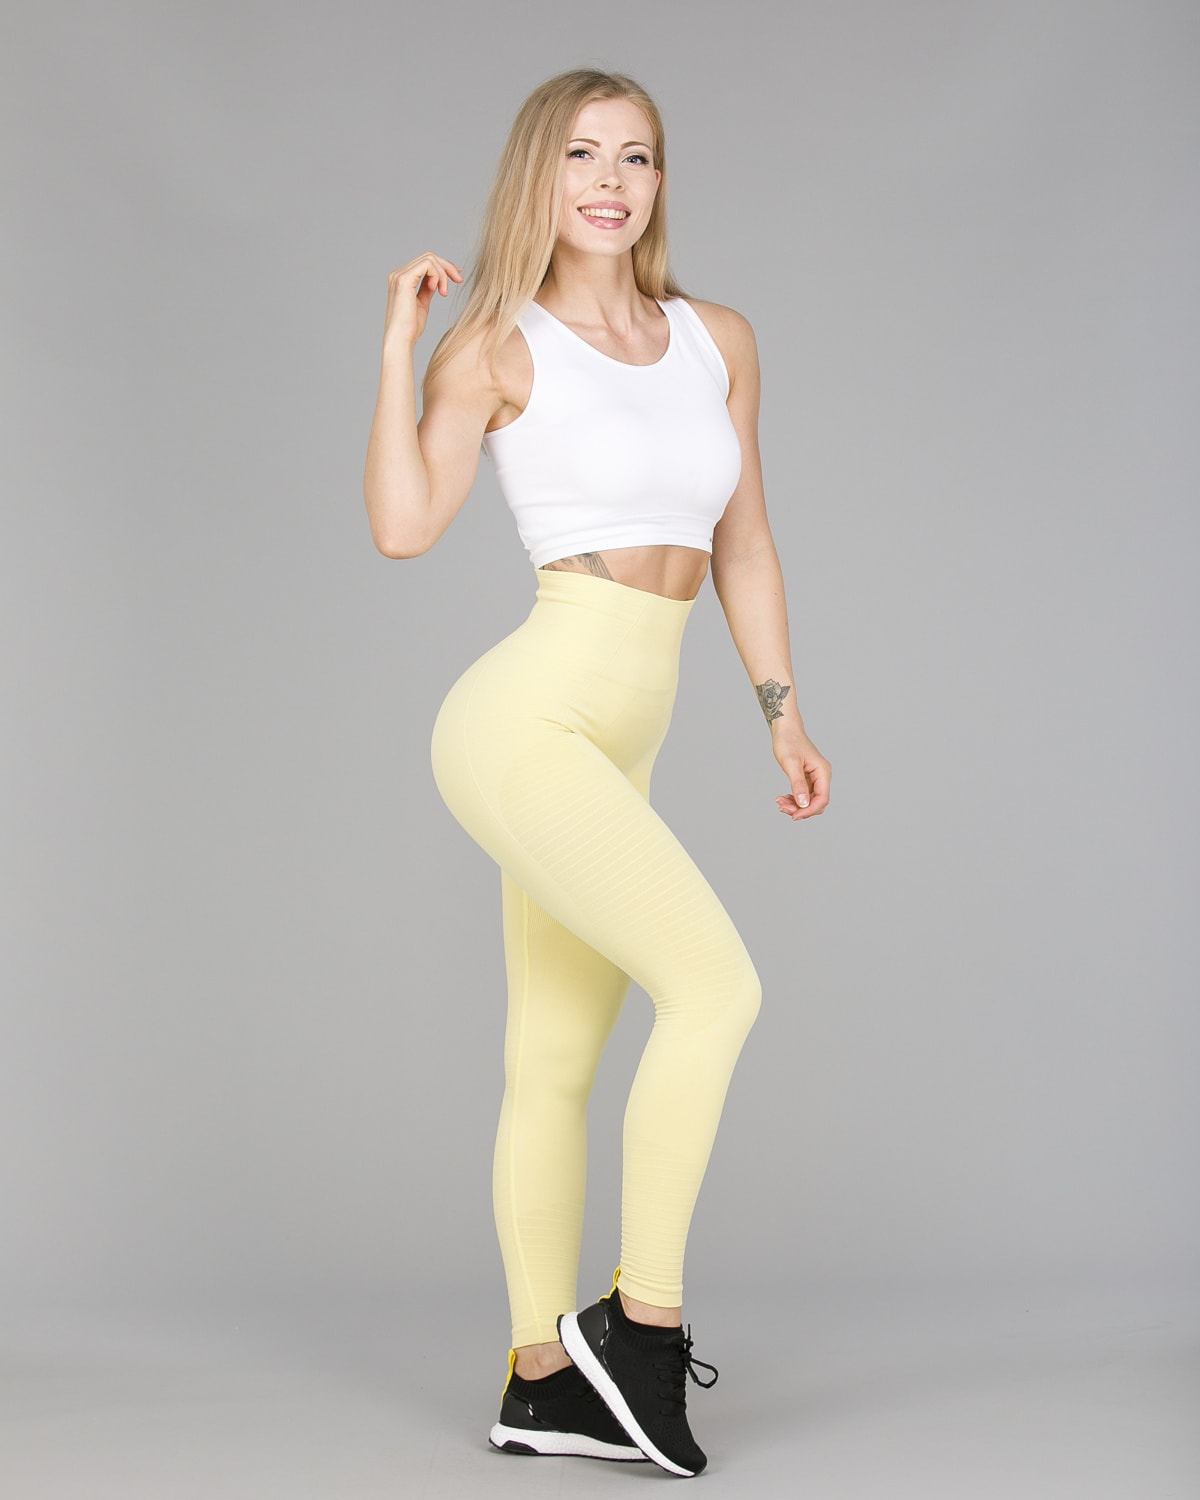 Jerf Gela 2.0 Tights Yellow Pastel9